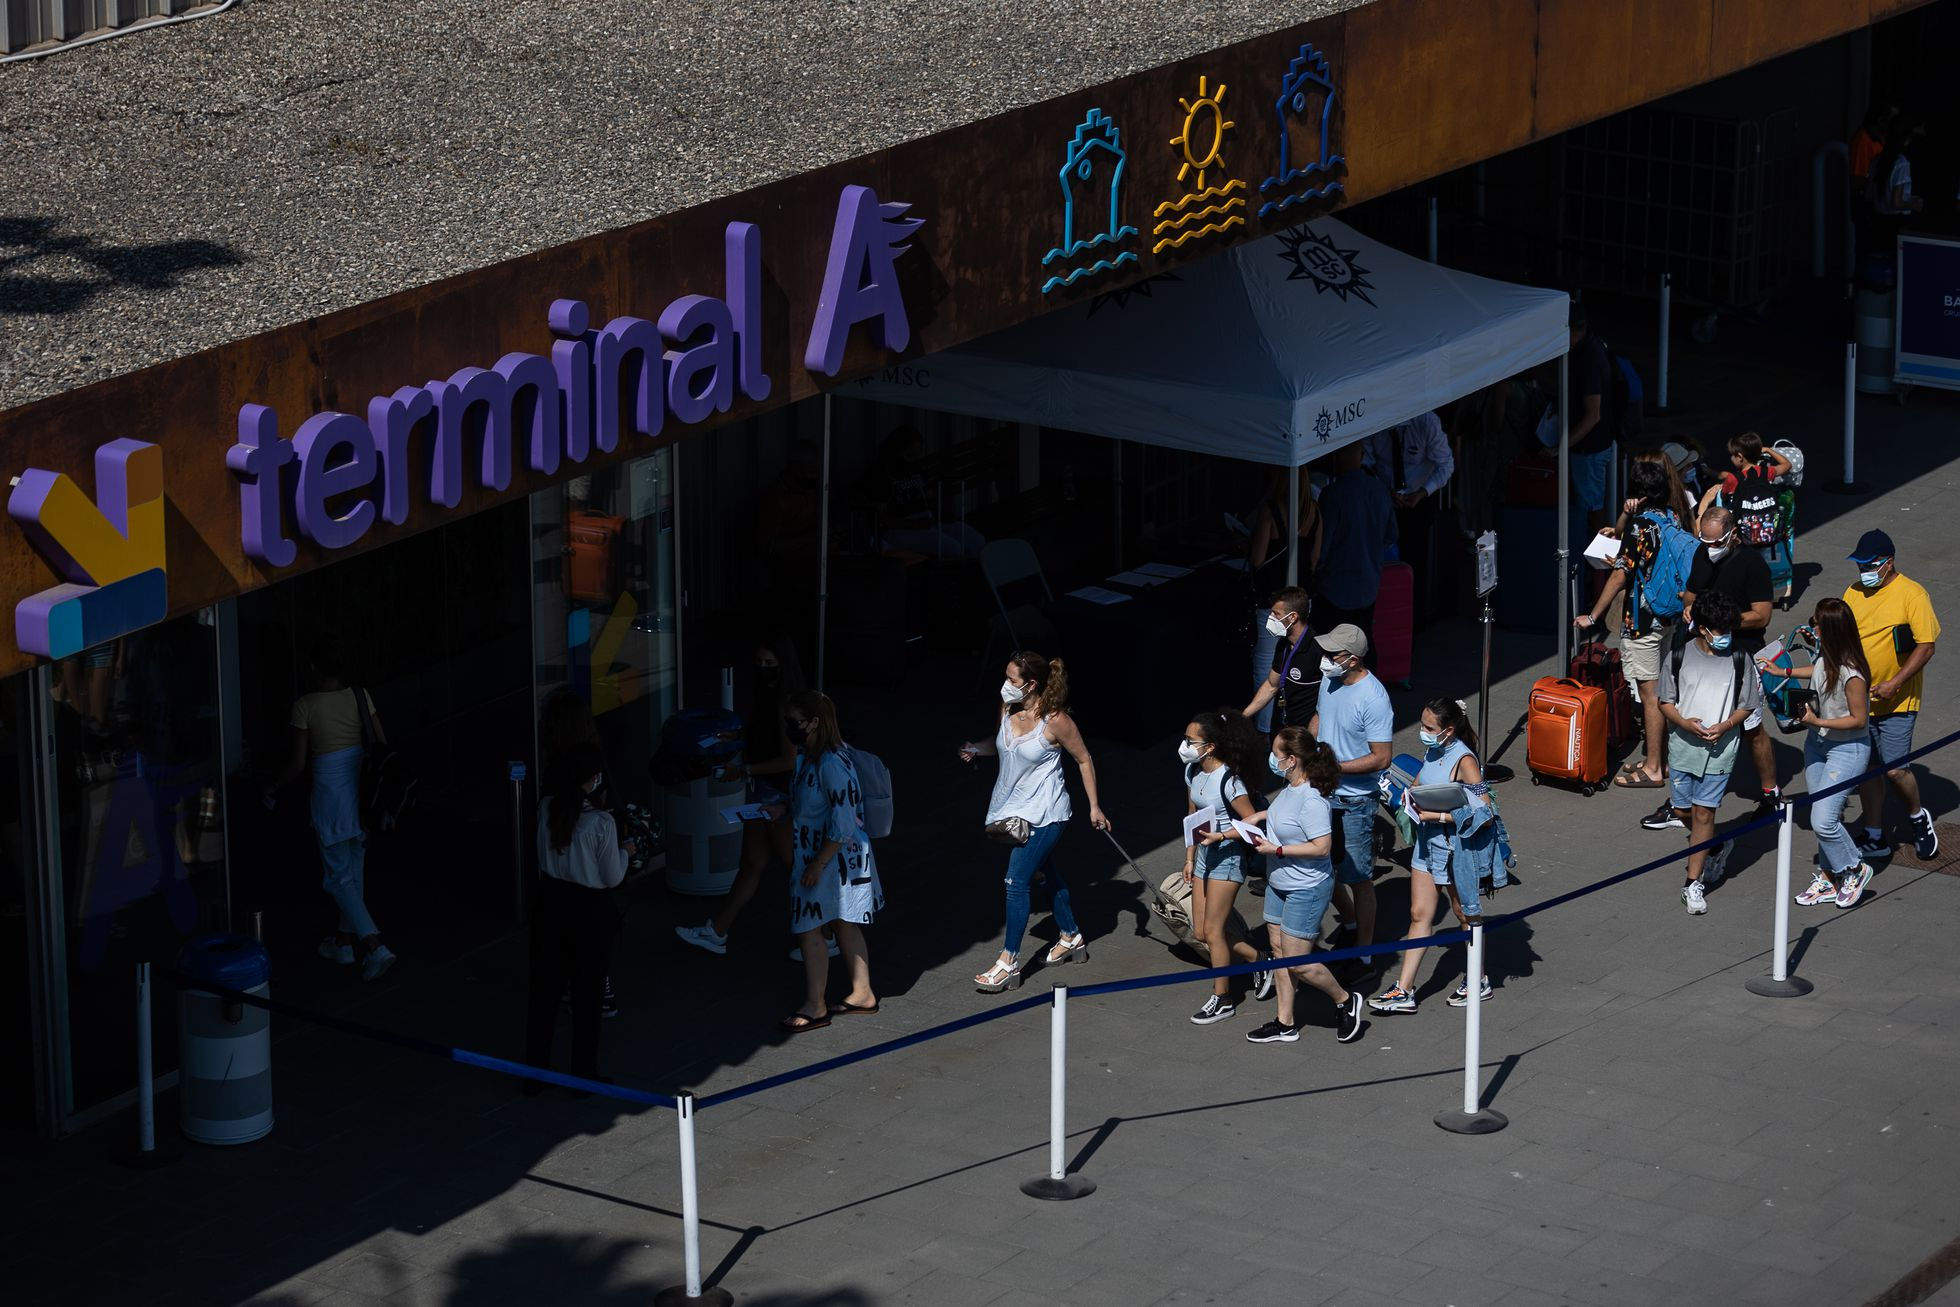 Coronavirus Spain S Tourism Sector Fears Wave Of Cancellations By Foreign Visitors Economy And Business El País In English